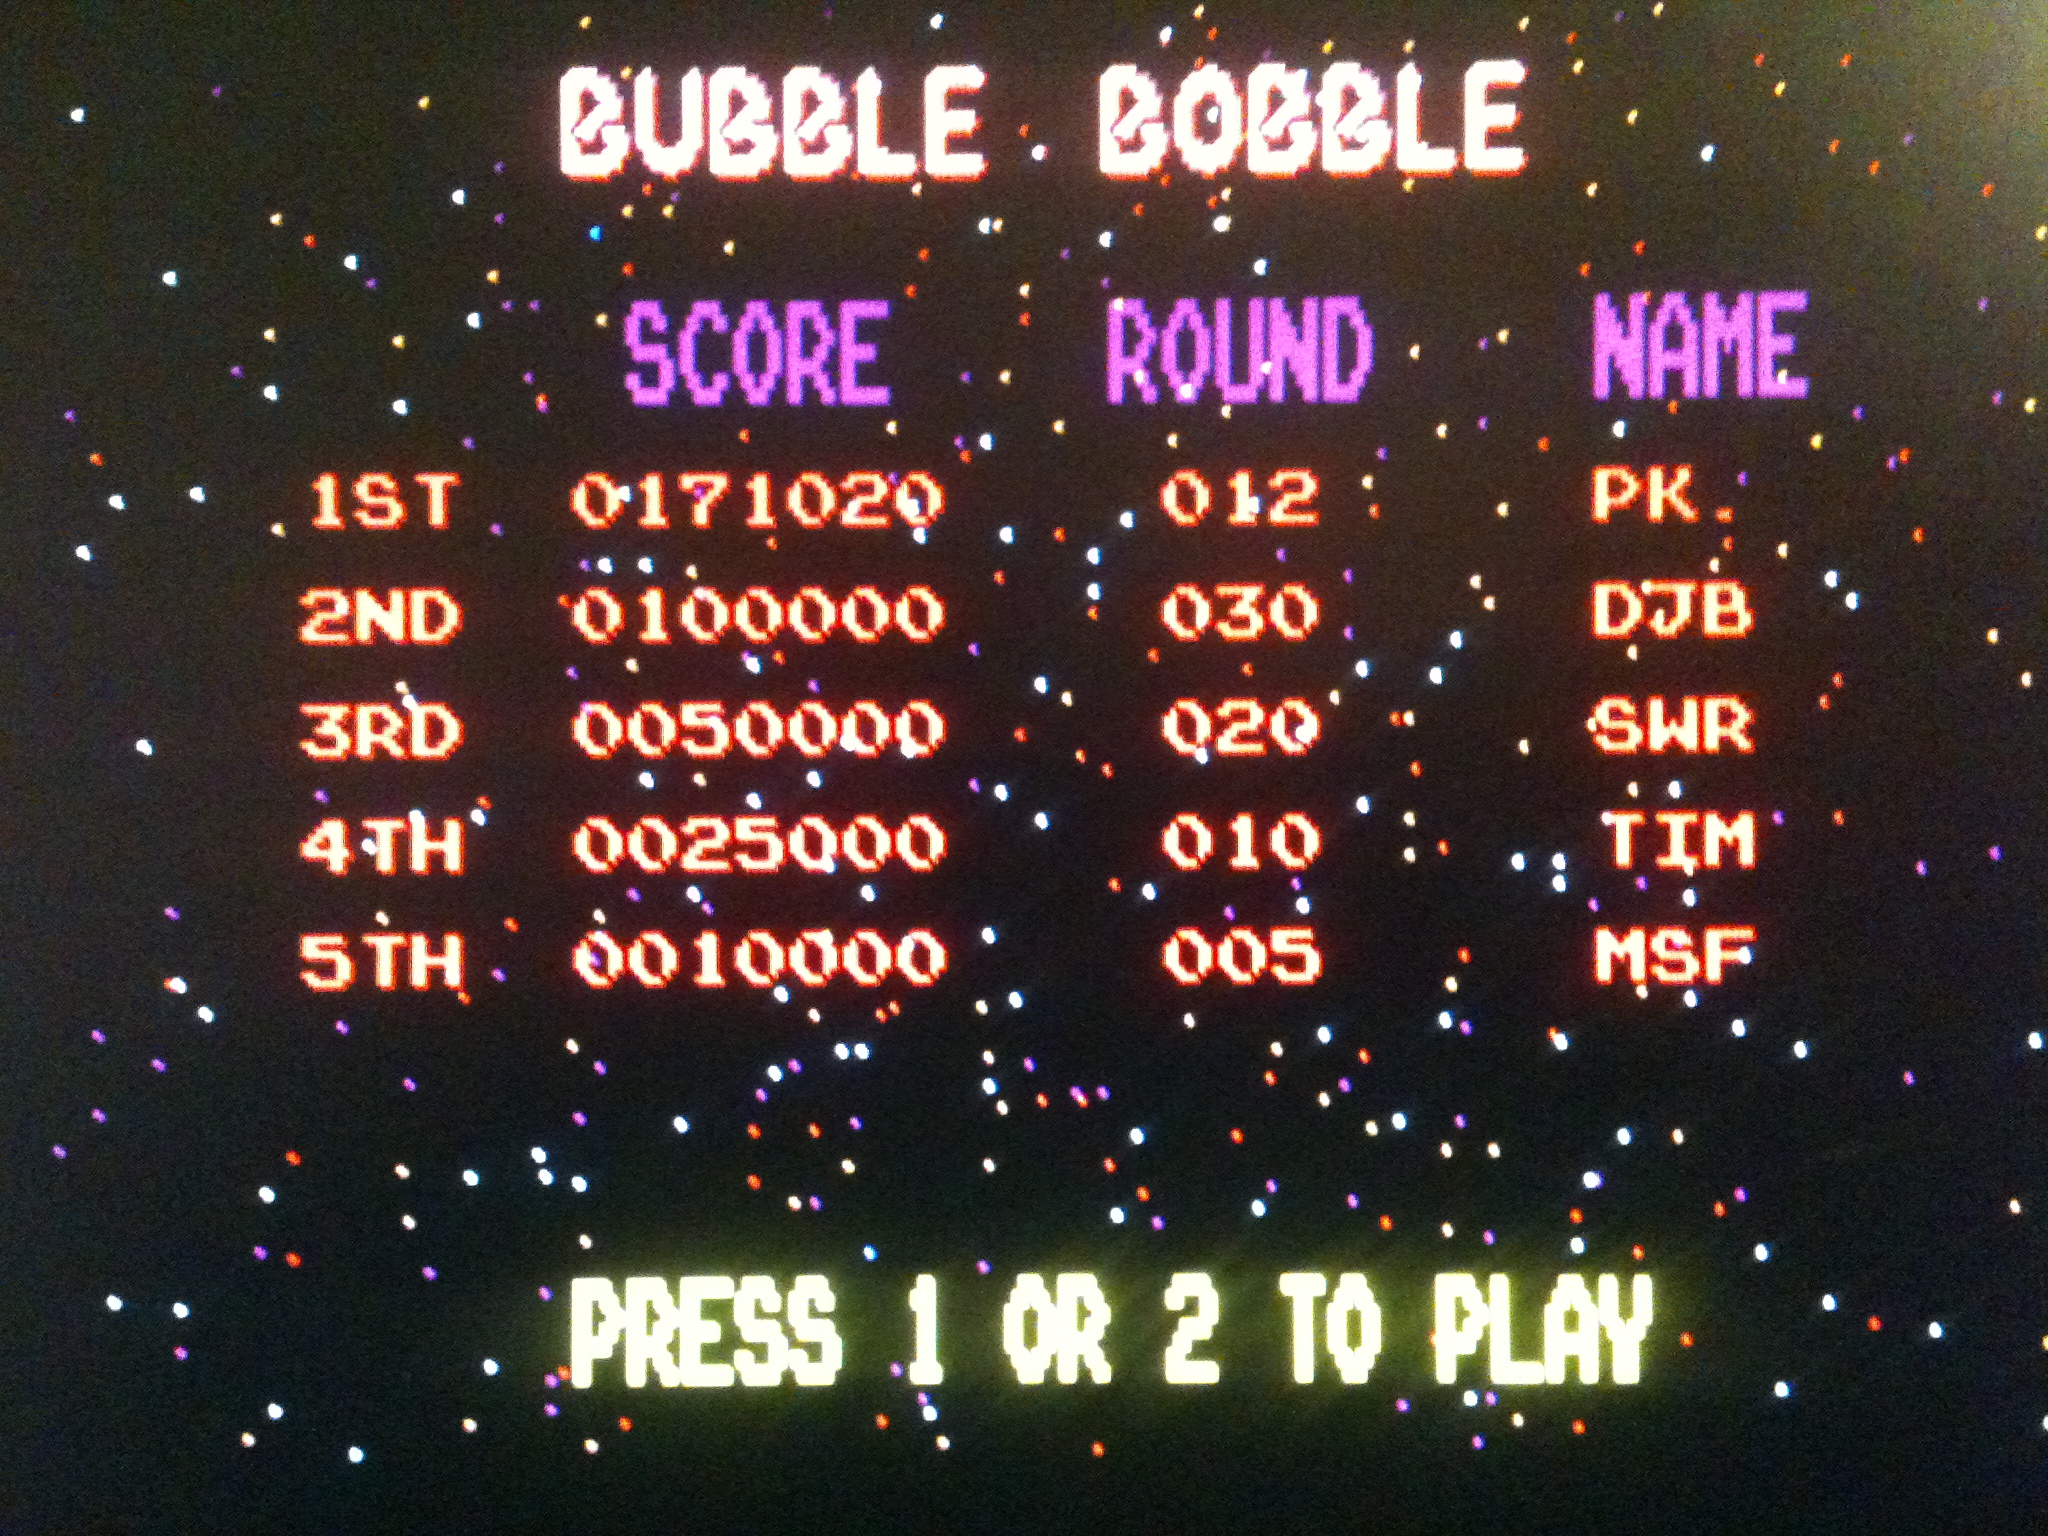 kernzy: Bubble Bobble (Atari ST Emulated) 171,020 points on 2015-02-17 21:27:37